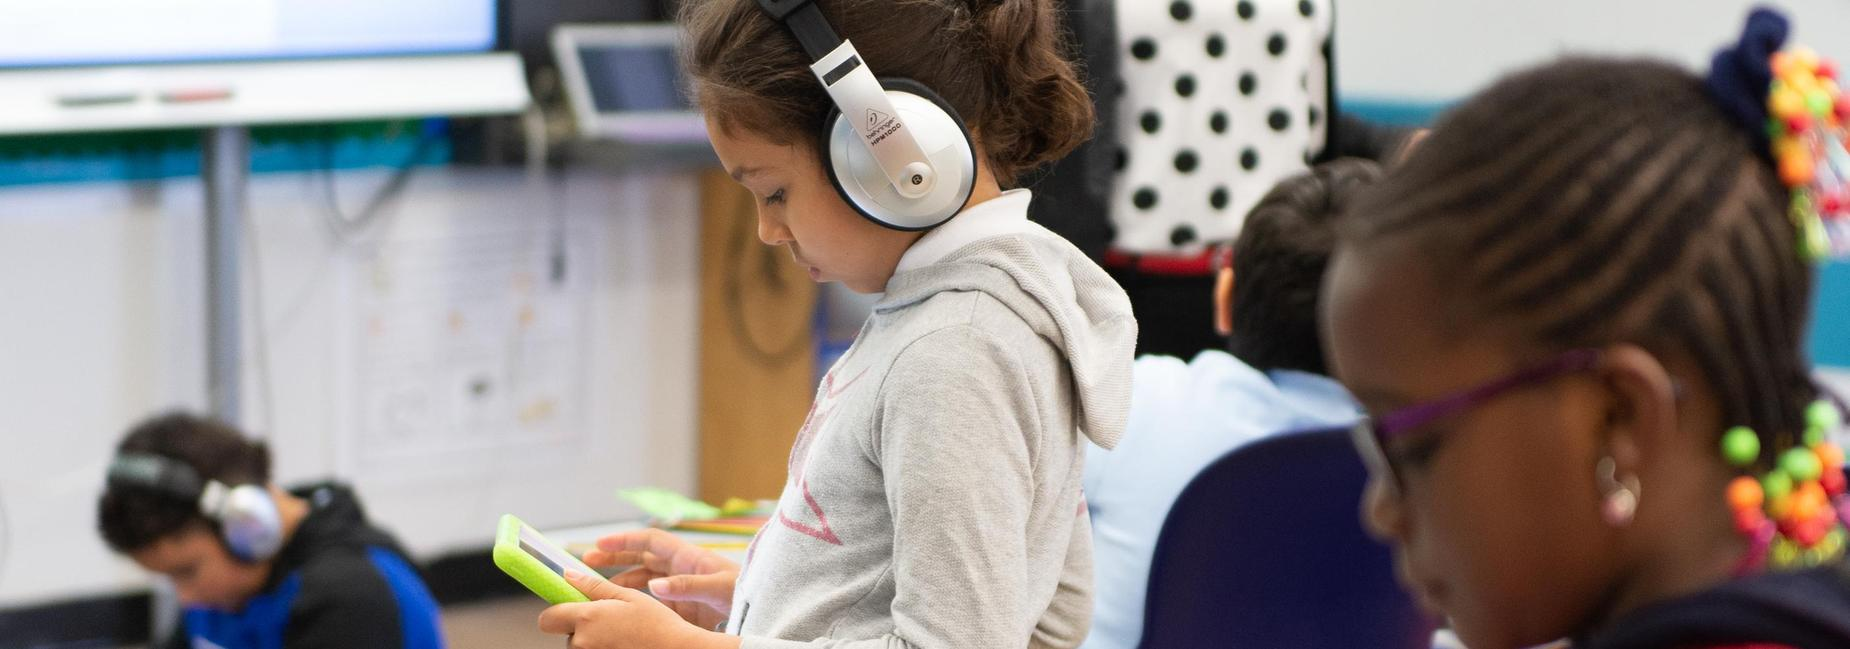 Elementary school students wearing headphones and using tablets.